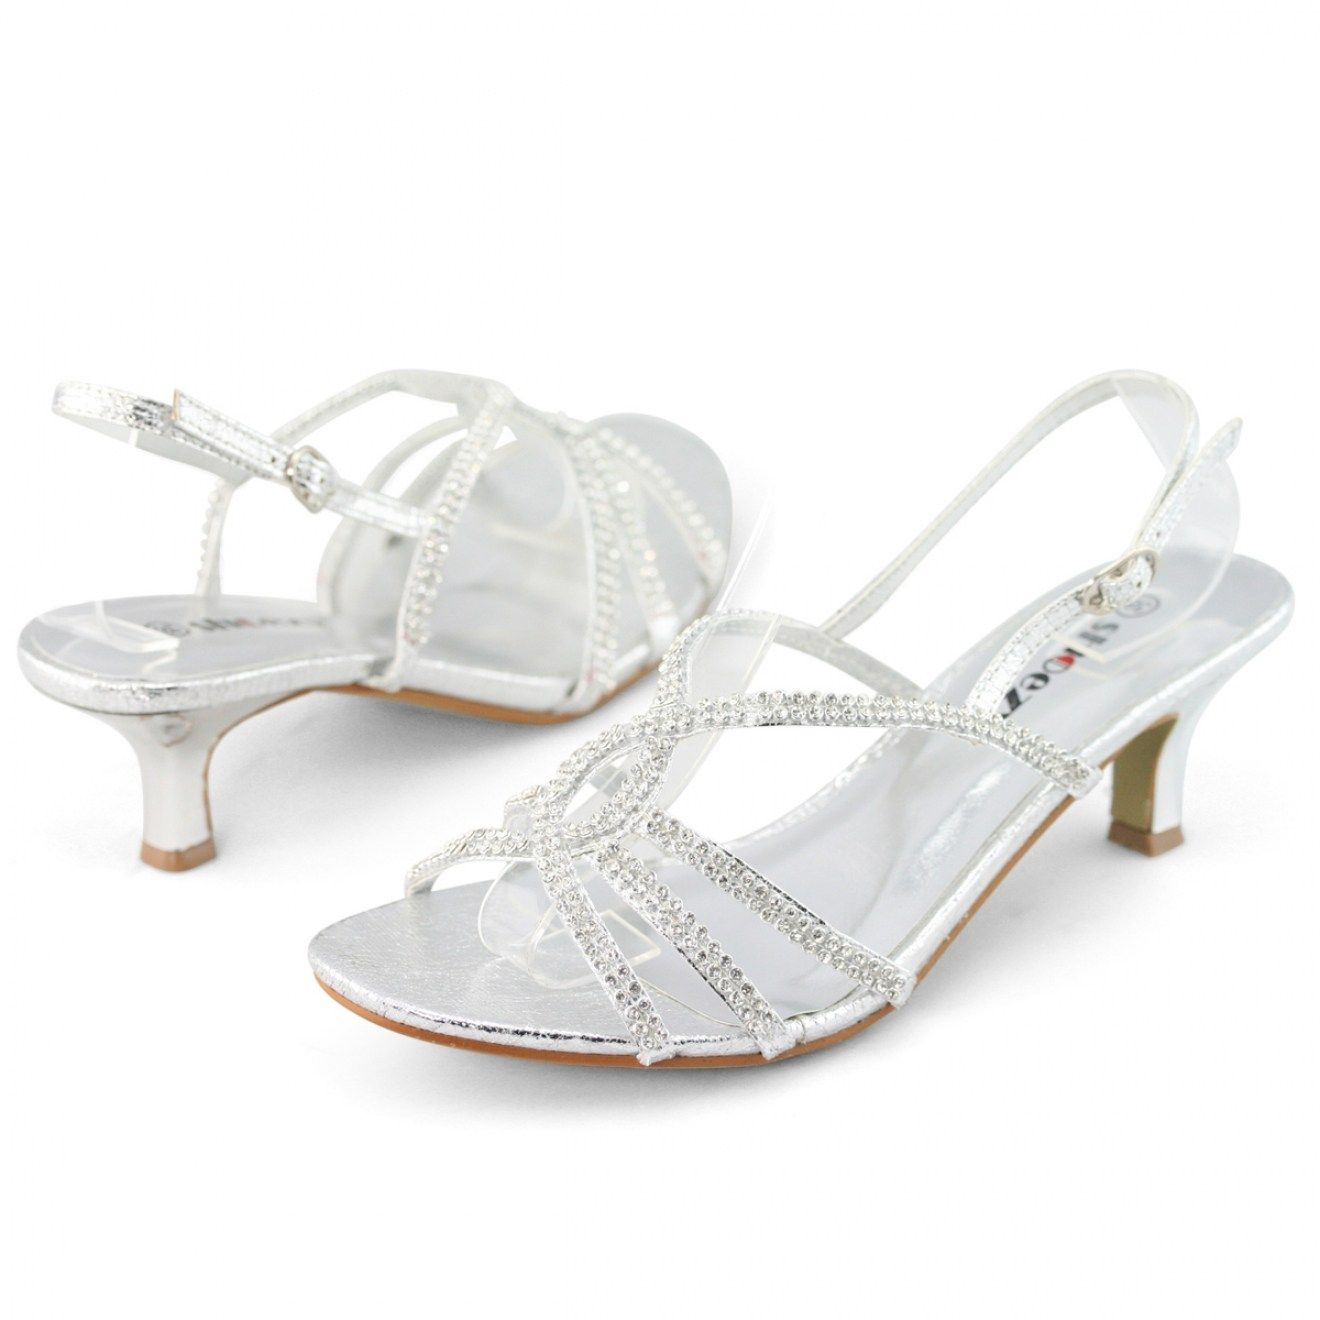 New Ladies Diamante Party Evening Prom Low Kitten Heel Court Shoe Size 007 Ebay Bridal Shoes Low Heel Silver Shoes Low Heel Kitten Heel Shoes